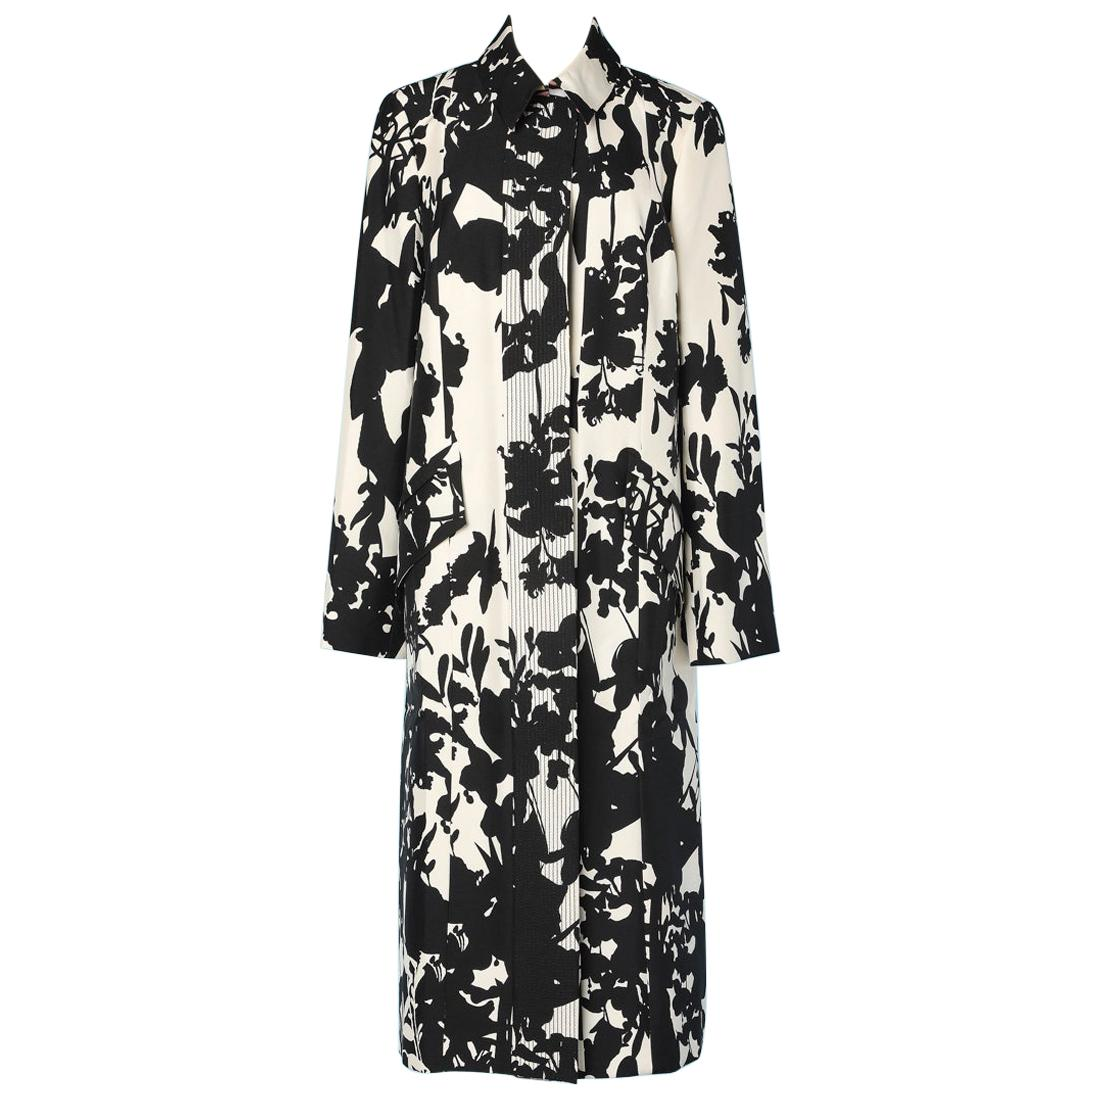 White and black silk vintage coat with Christian Lacroix print